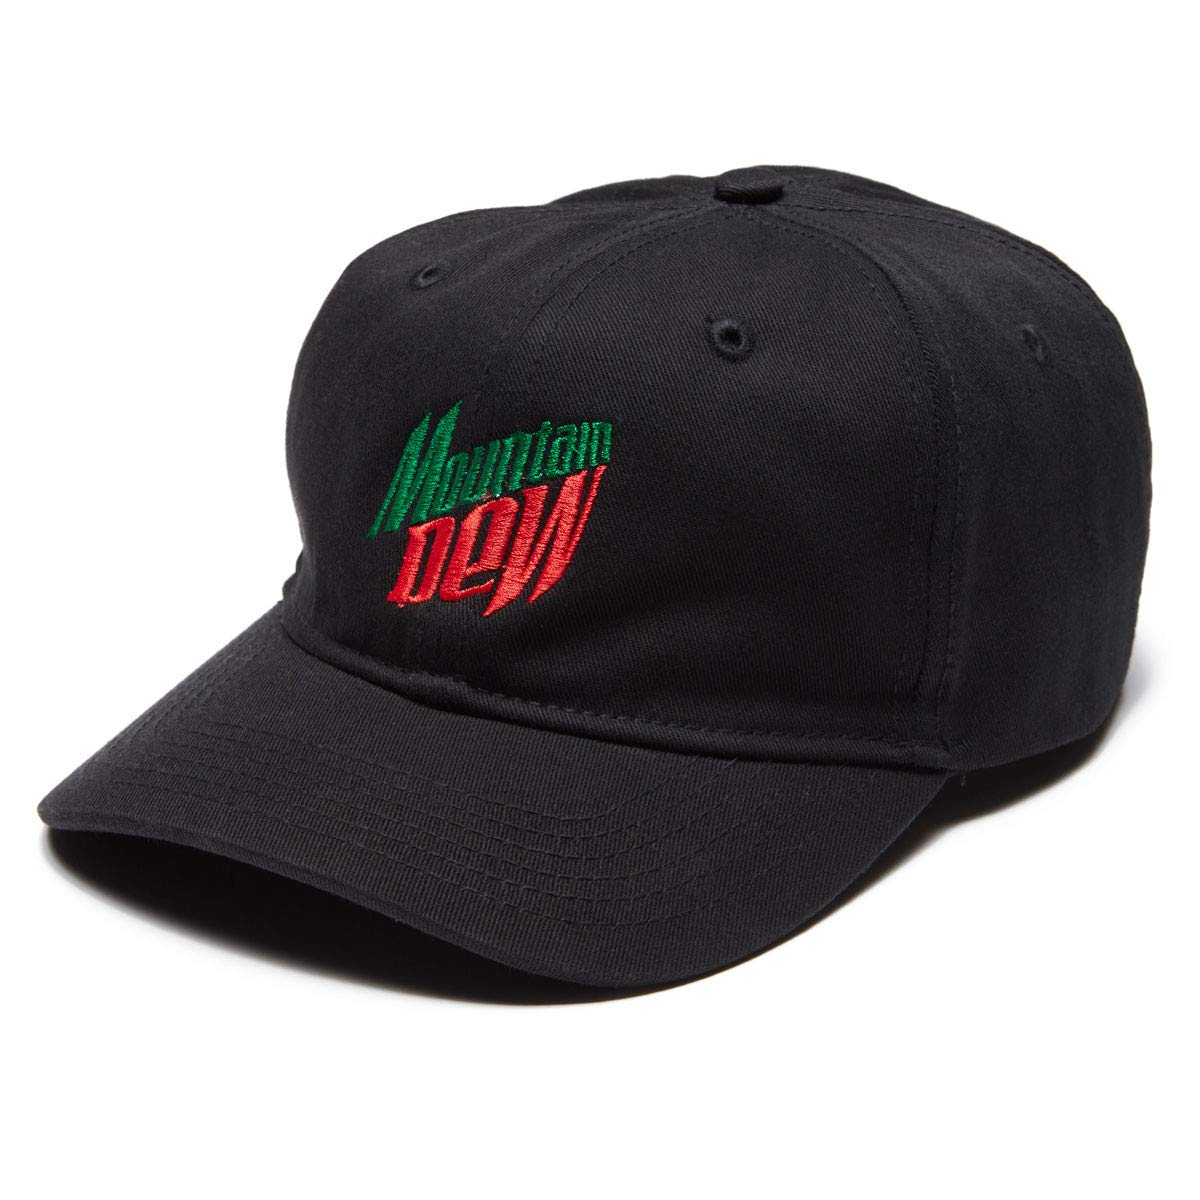 4b5706624 CCS x Mountain Dew Sponor Hat Black at Amazon Men's Clothing store: